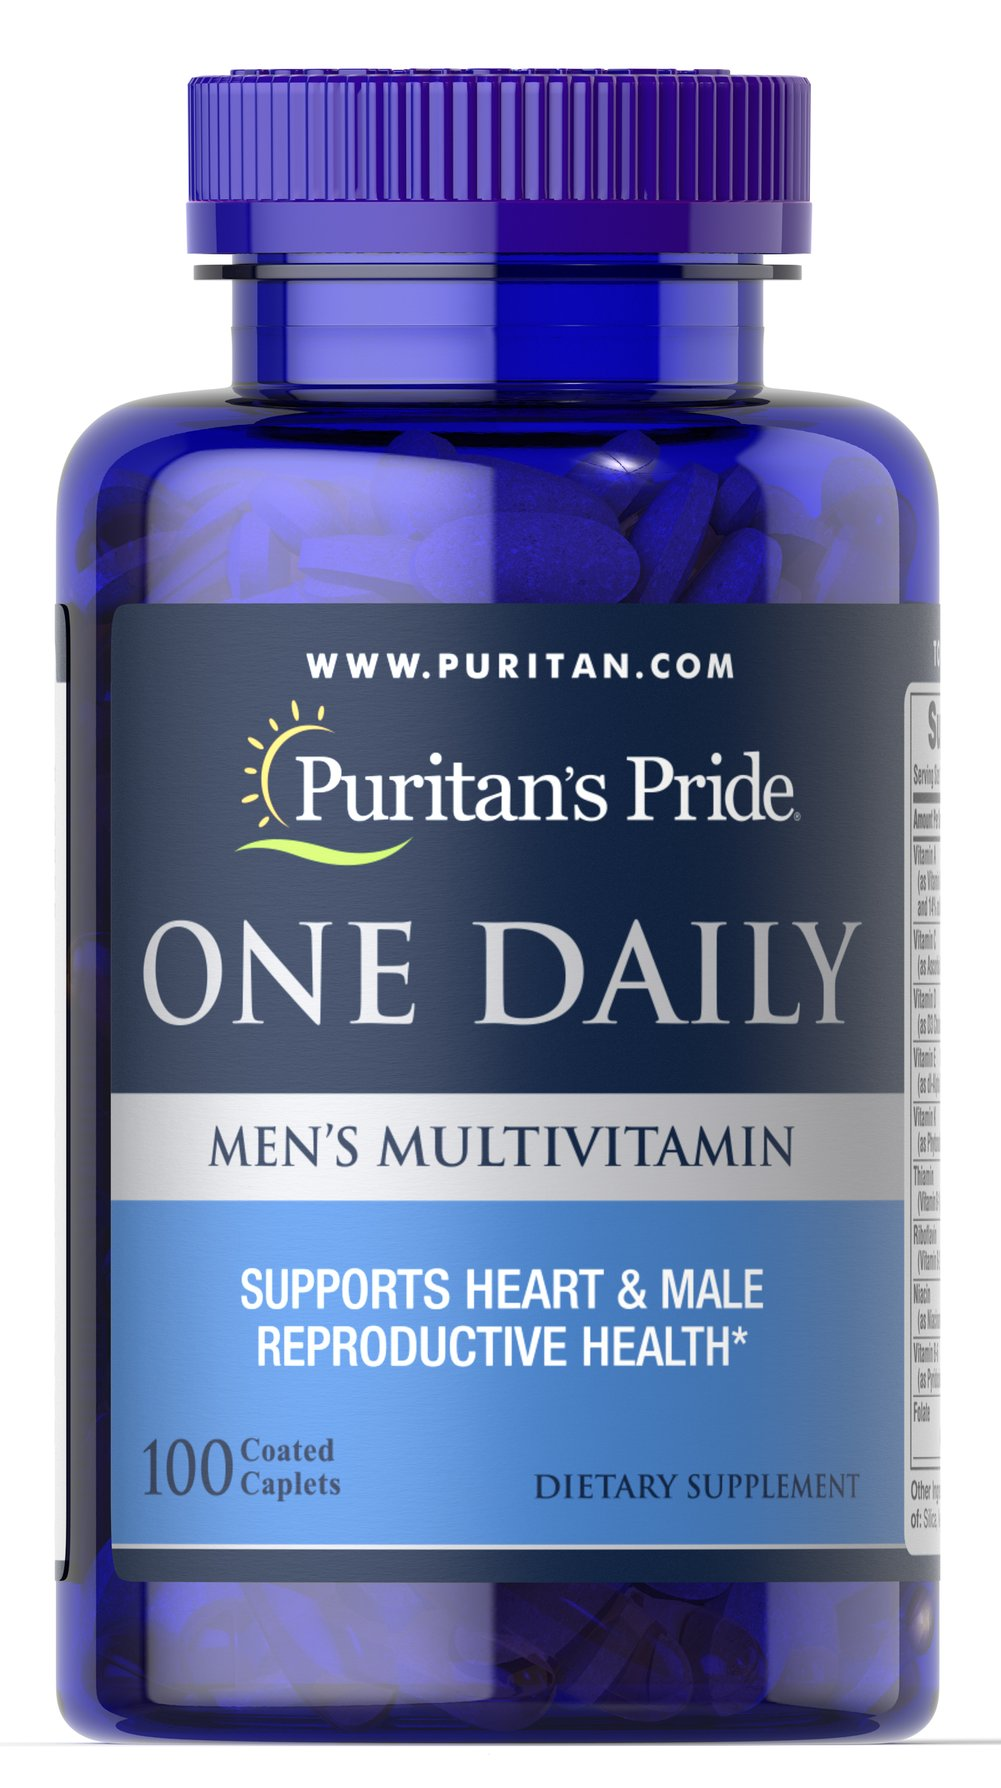 One Daily Men's Multivitamin  100 Caplets  $13.39